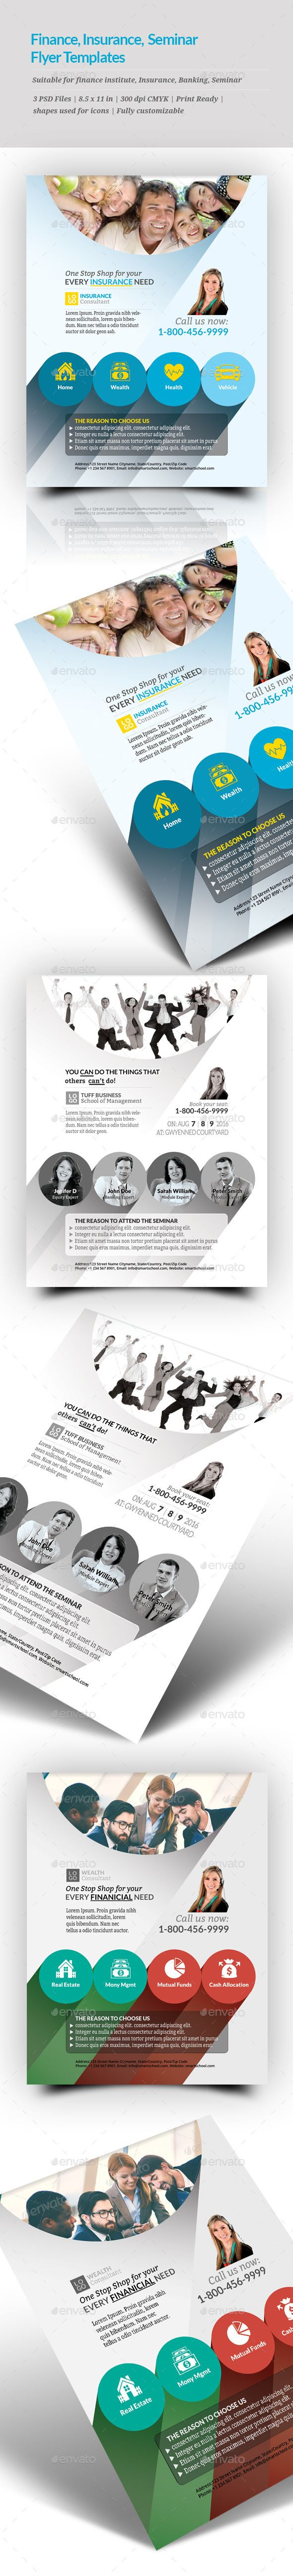 Finance Insurance Seminar Flyer Templates  Flyer Template